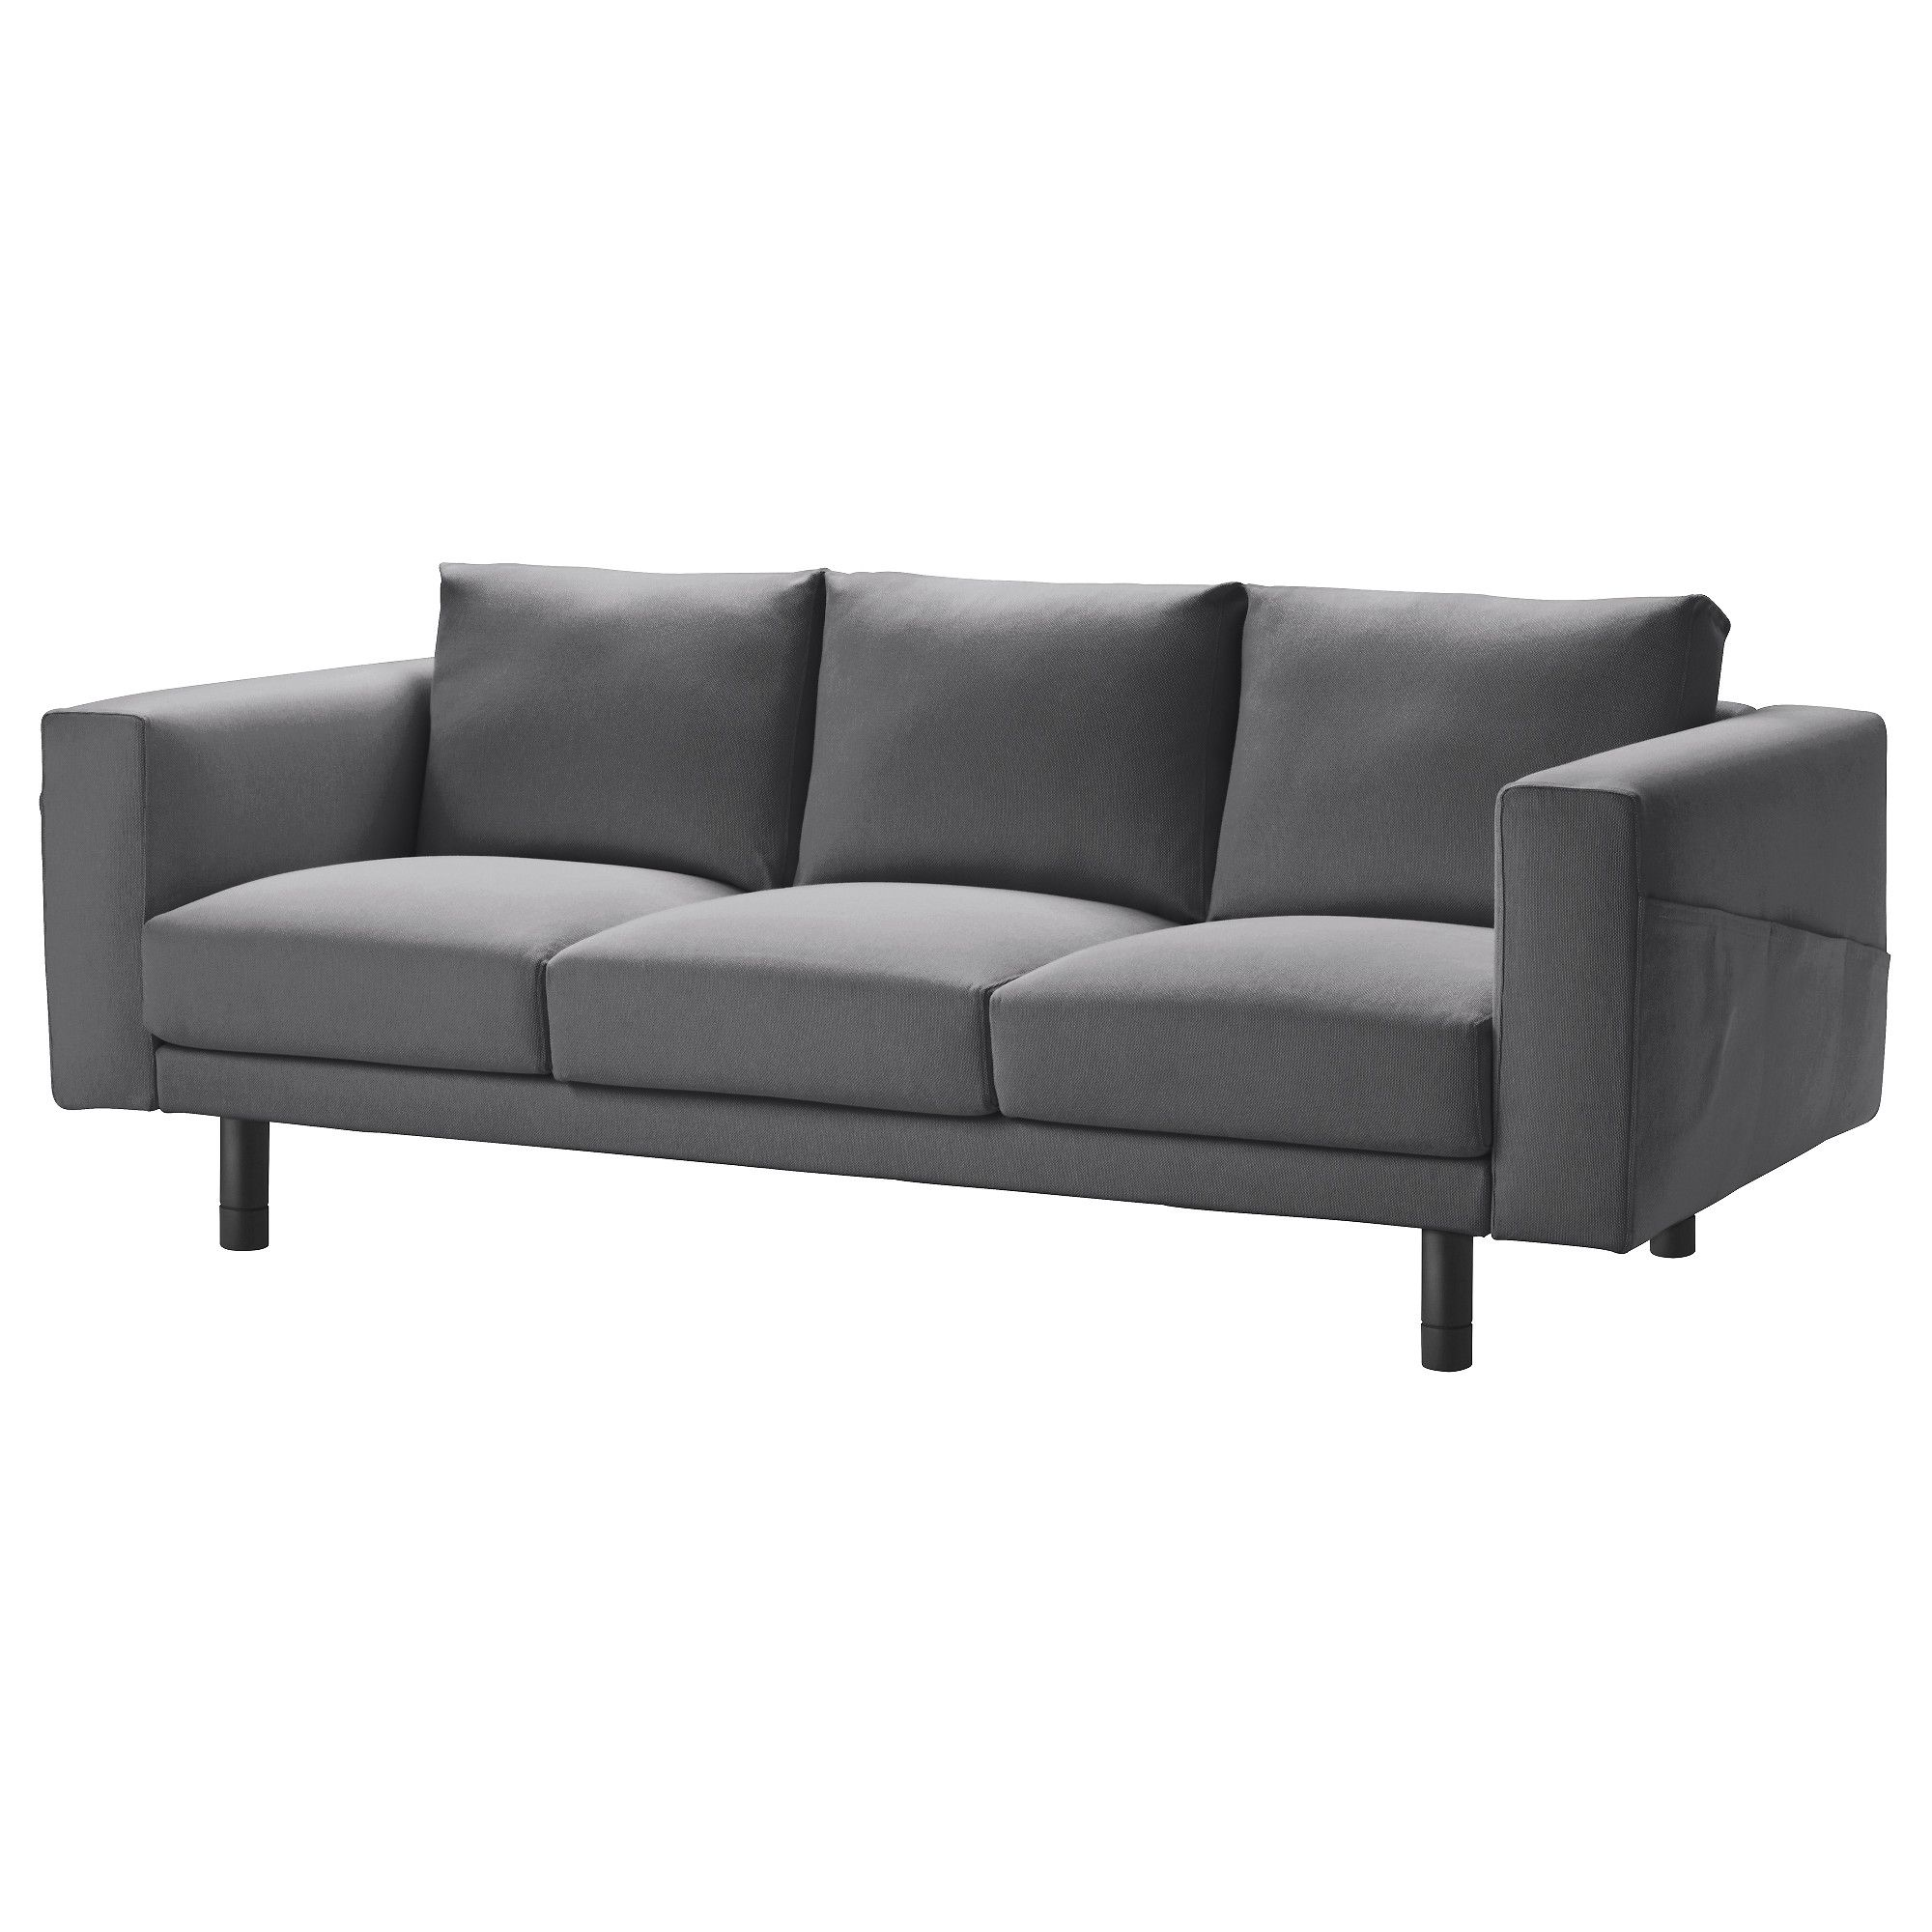 Bettsofa mit bettkasten ikea  NORSBORG Three-seat sofa, Finnsta dark grey, grey | sofa | Pinterest